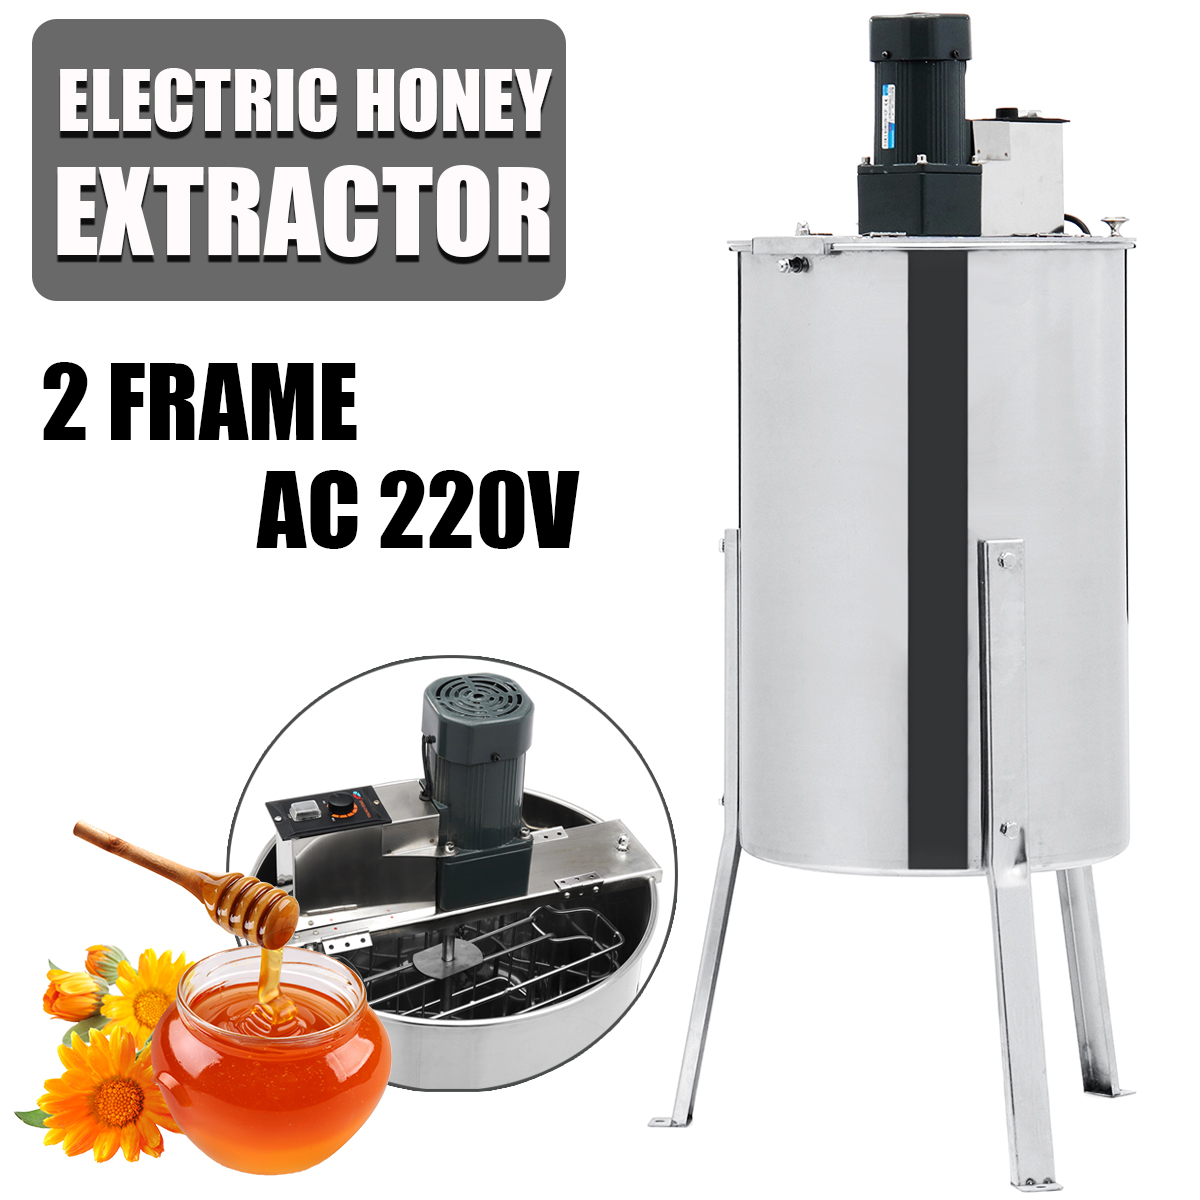 2 Frame Bee Manual Honey Extractor Beekeeping Tool Box Electric Stainless Steel Beekeeping Equipment Honey Extractor Supplies